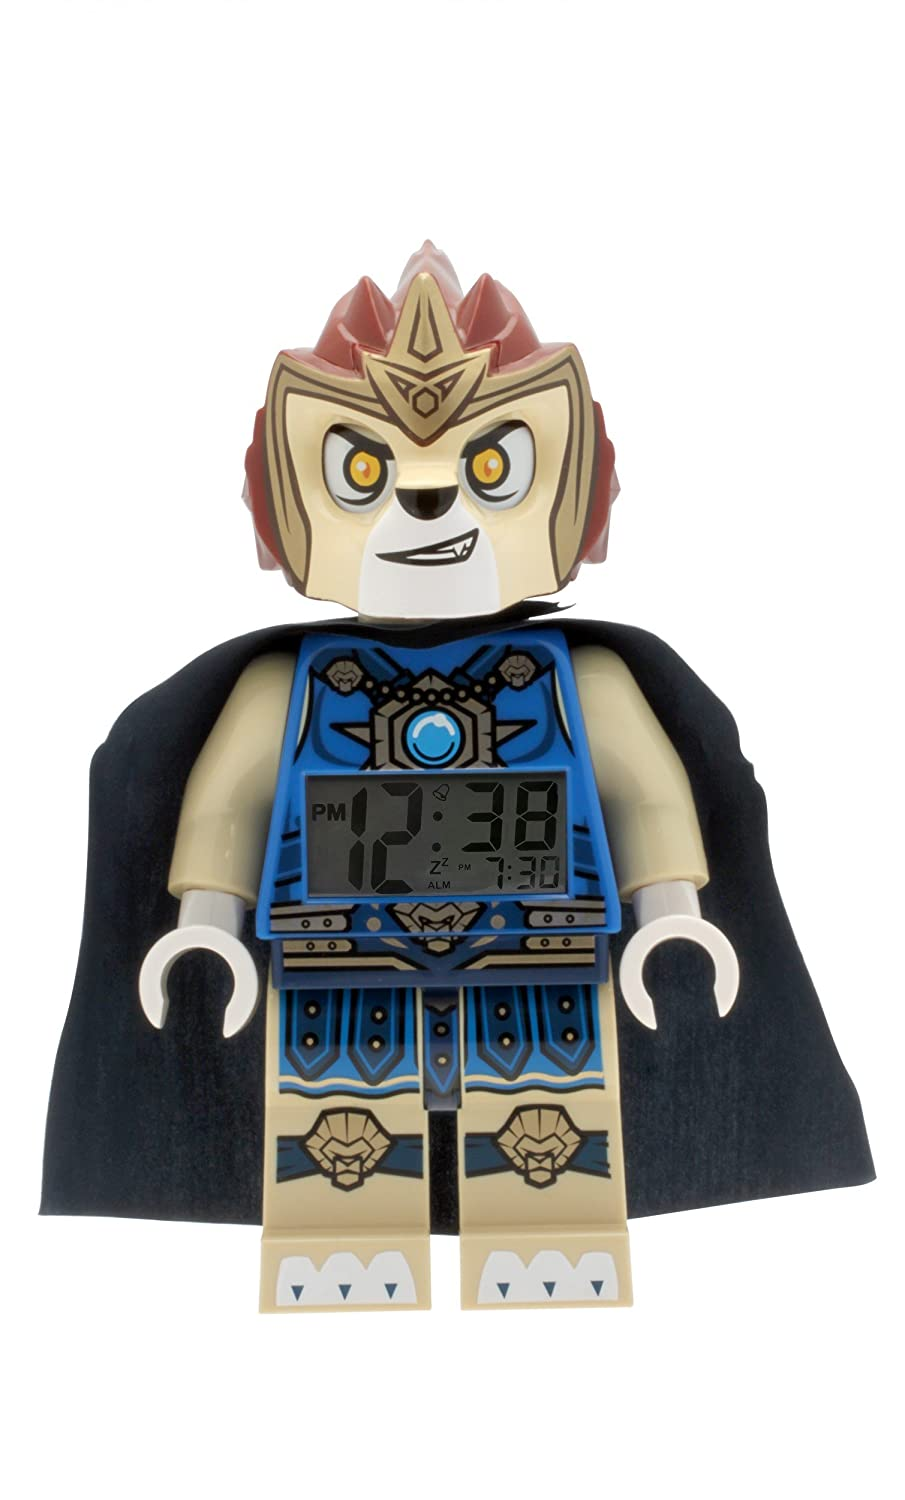 LEGO Kids' 9000560 Legends of Chima Laval Mini-Figure Light Up Alarm Clock